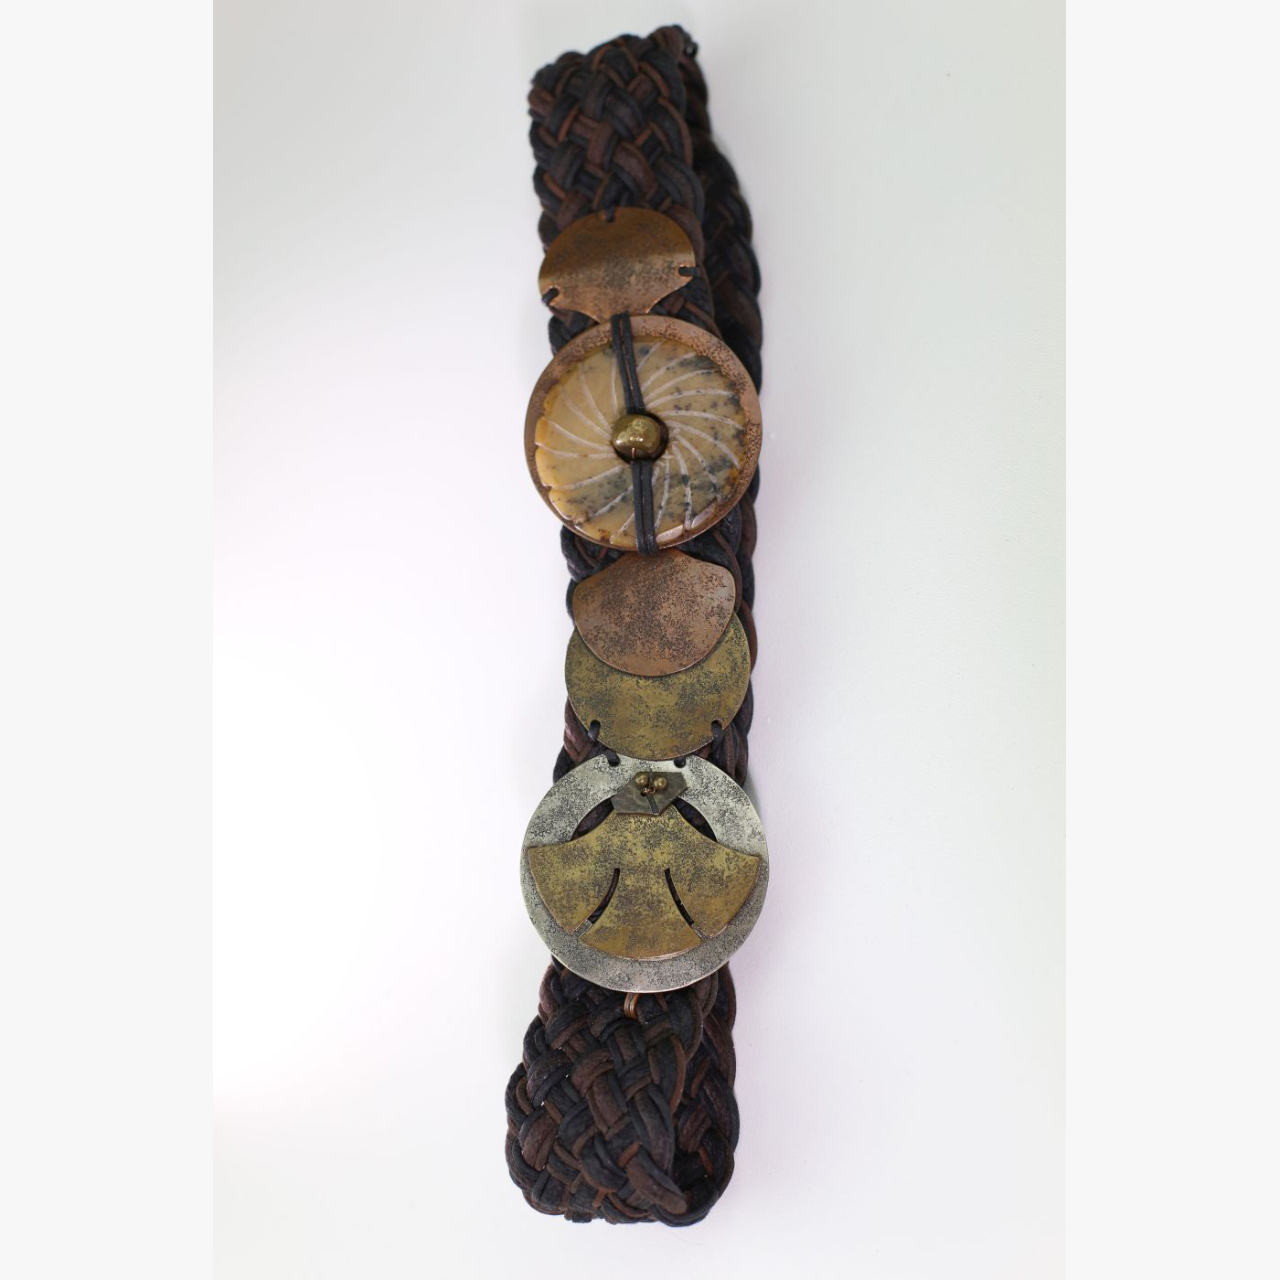 Product Image 1 - 1970's Braided Leather Marjorie Baer